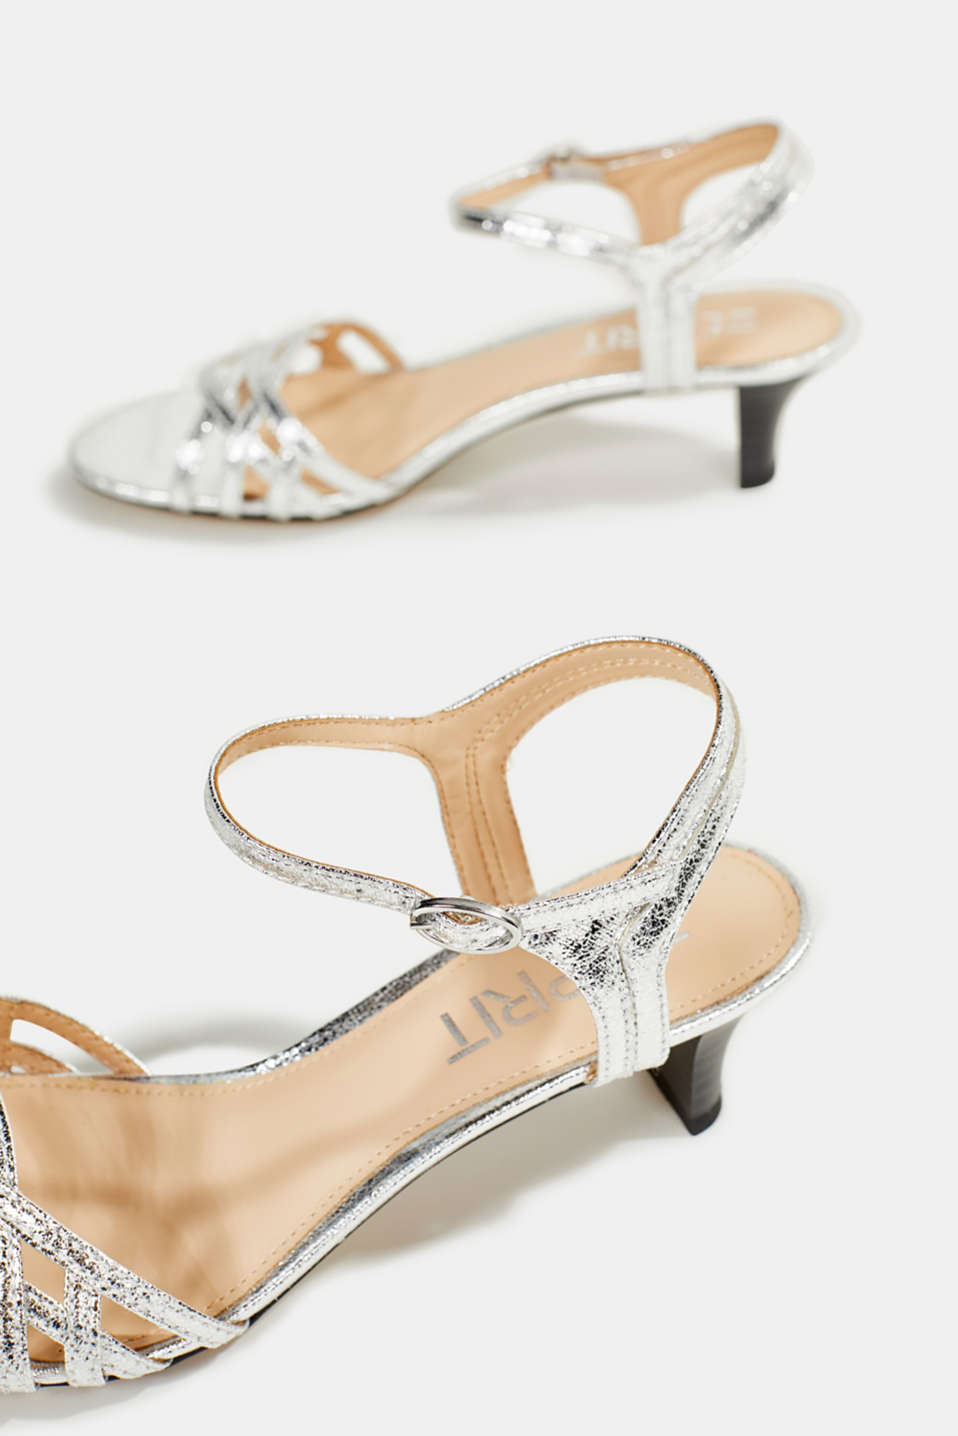 Sandals with straps in a braided look, SILVER, detail image number 5